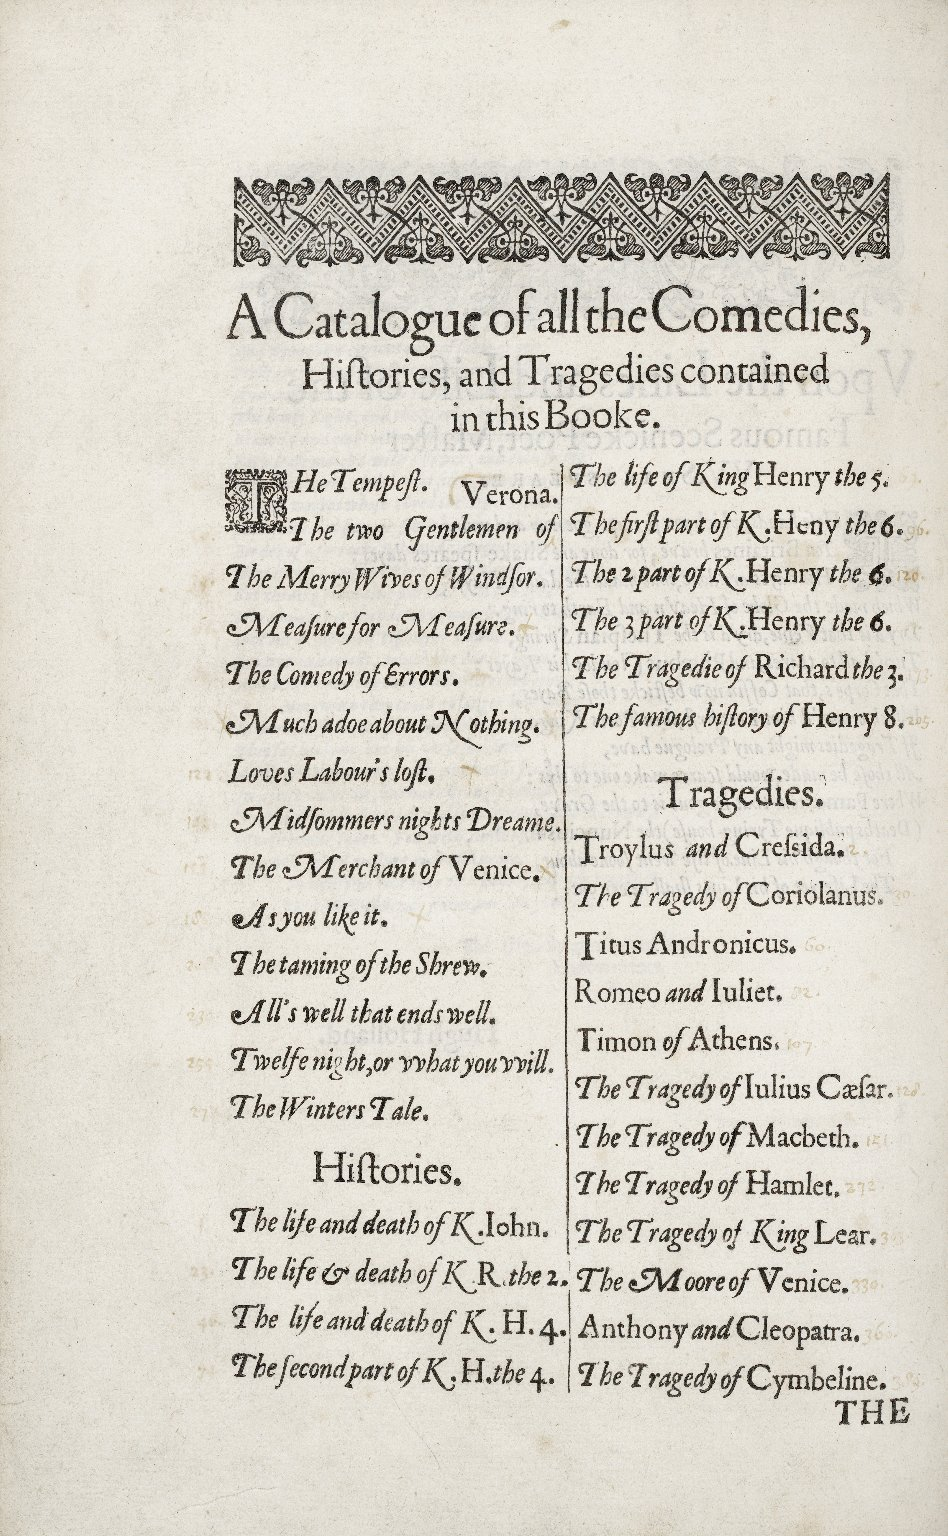 Mr. VVilliam Shakespeares comedies, histories, and tragedies